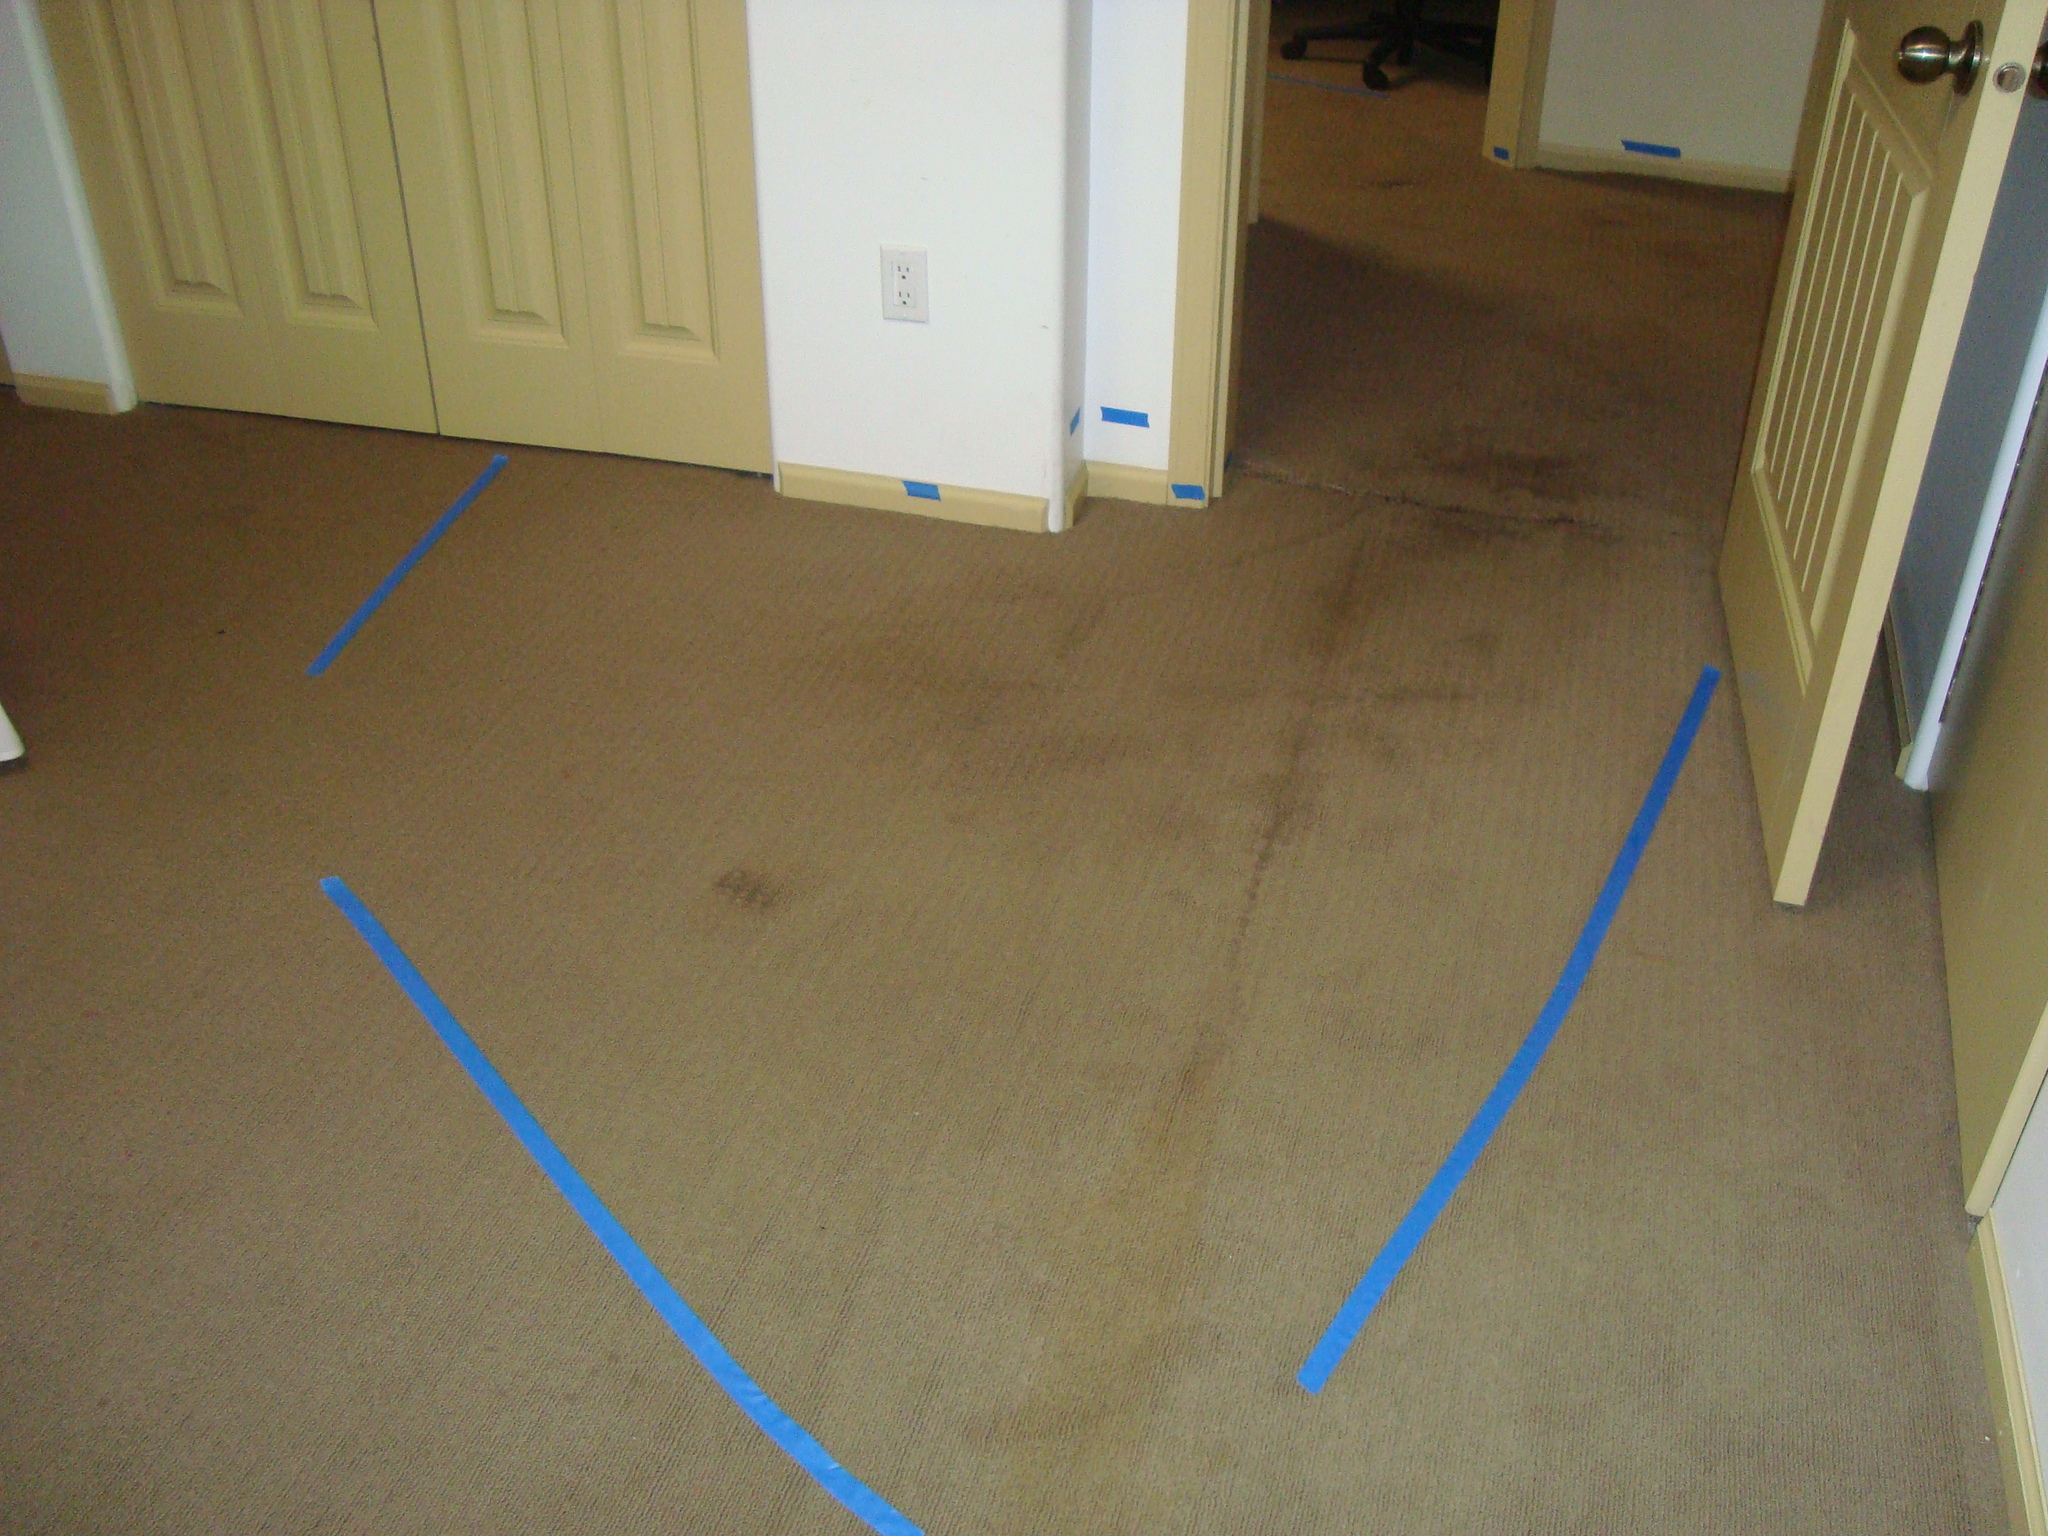 Sewer backup cleanup sewer flood in home sewer clean up for Sewer backup in house